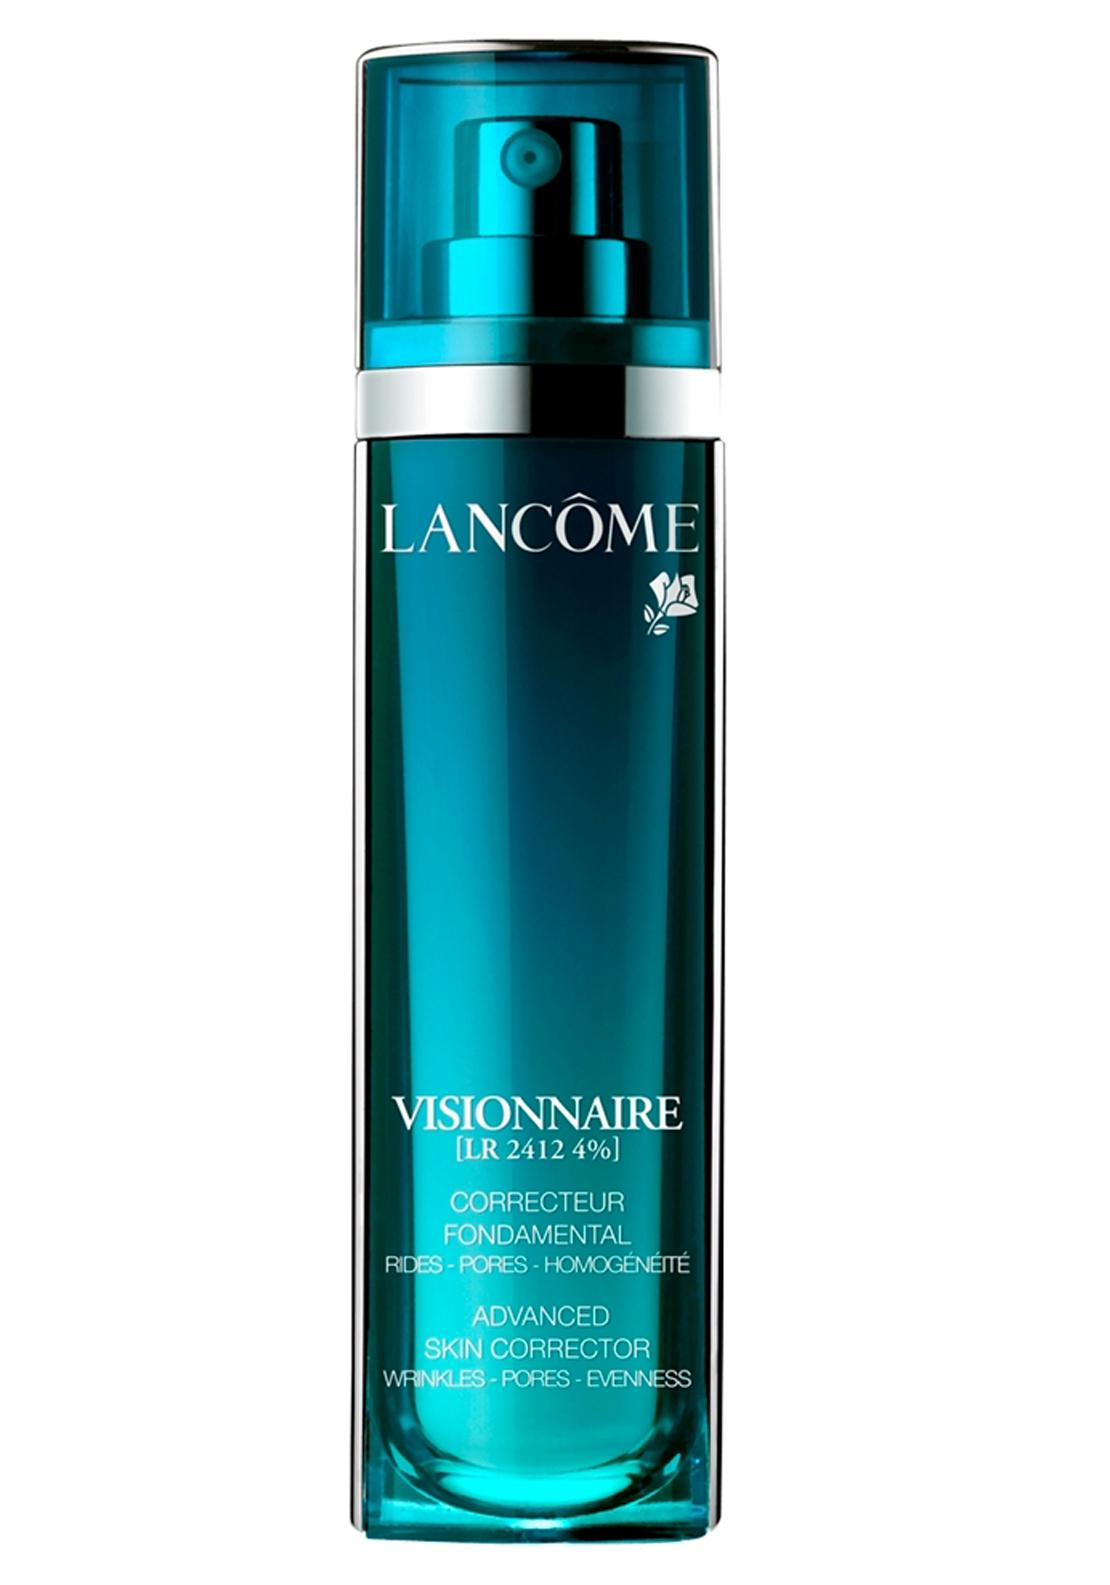 Lancome Visionnaire Advanced Skin Corrector 30ml Lancome